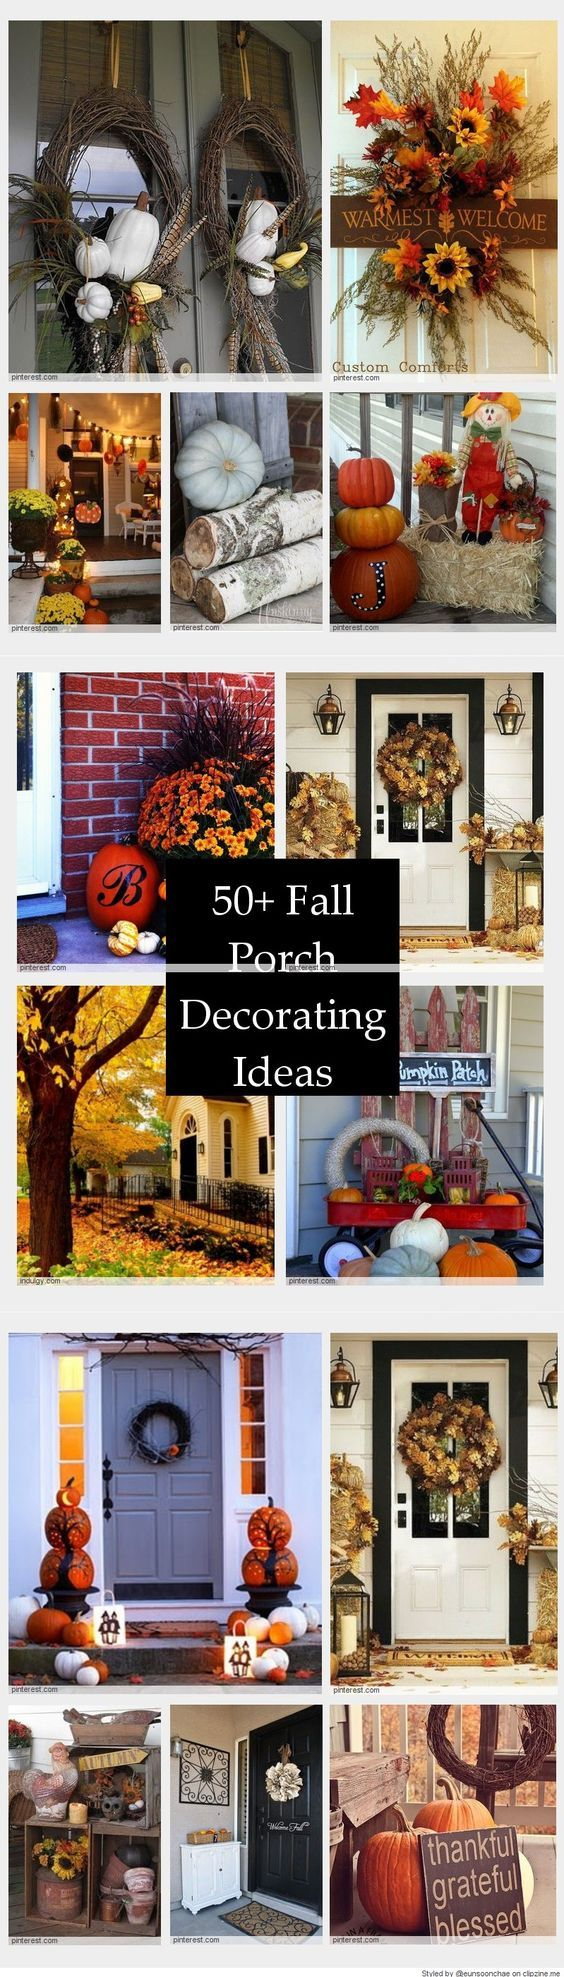 Doors pleasant fall decorating ideas for outside pinterest autumn - 66 Best Fall Images On Pinterest Fall Fall Decorations And Fall Harvest